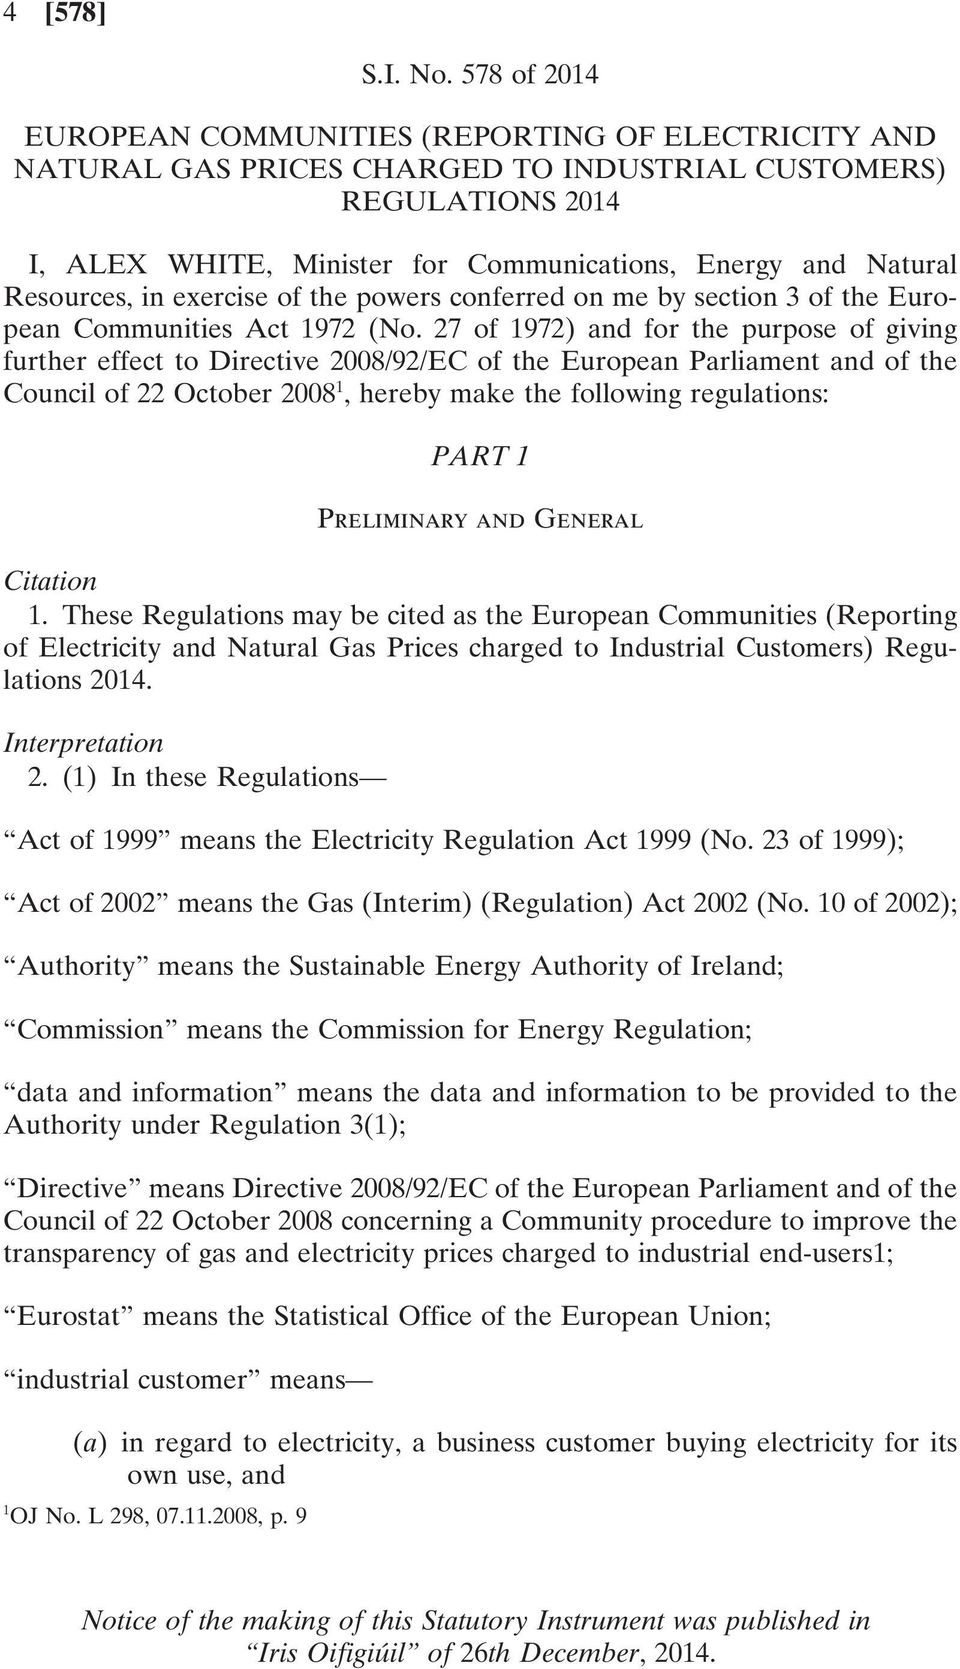 Resources, in exercise of the powers conferred on me by section 3 of the European Communities Act 1972 (No.